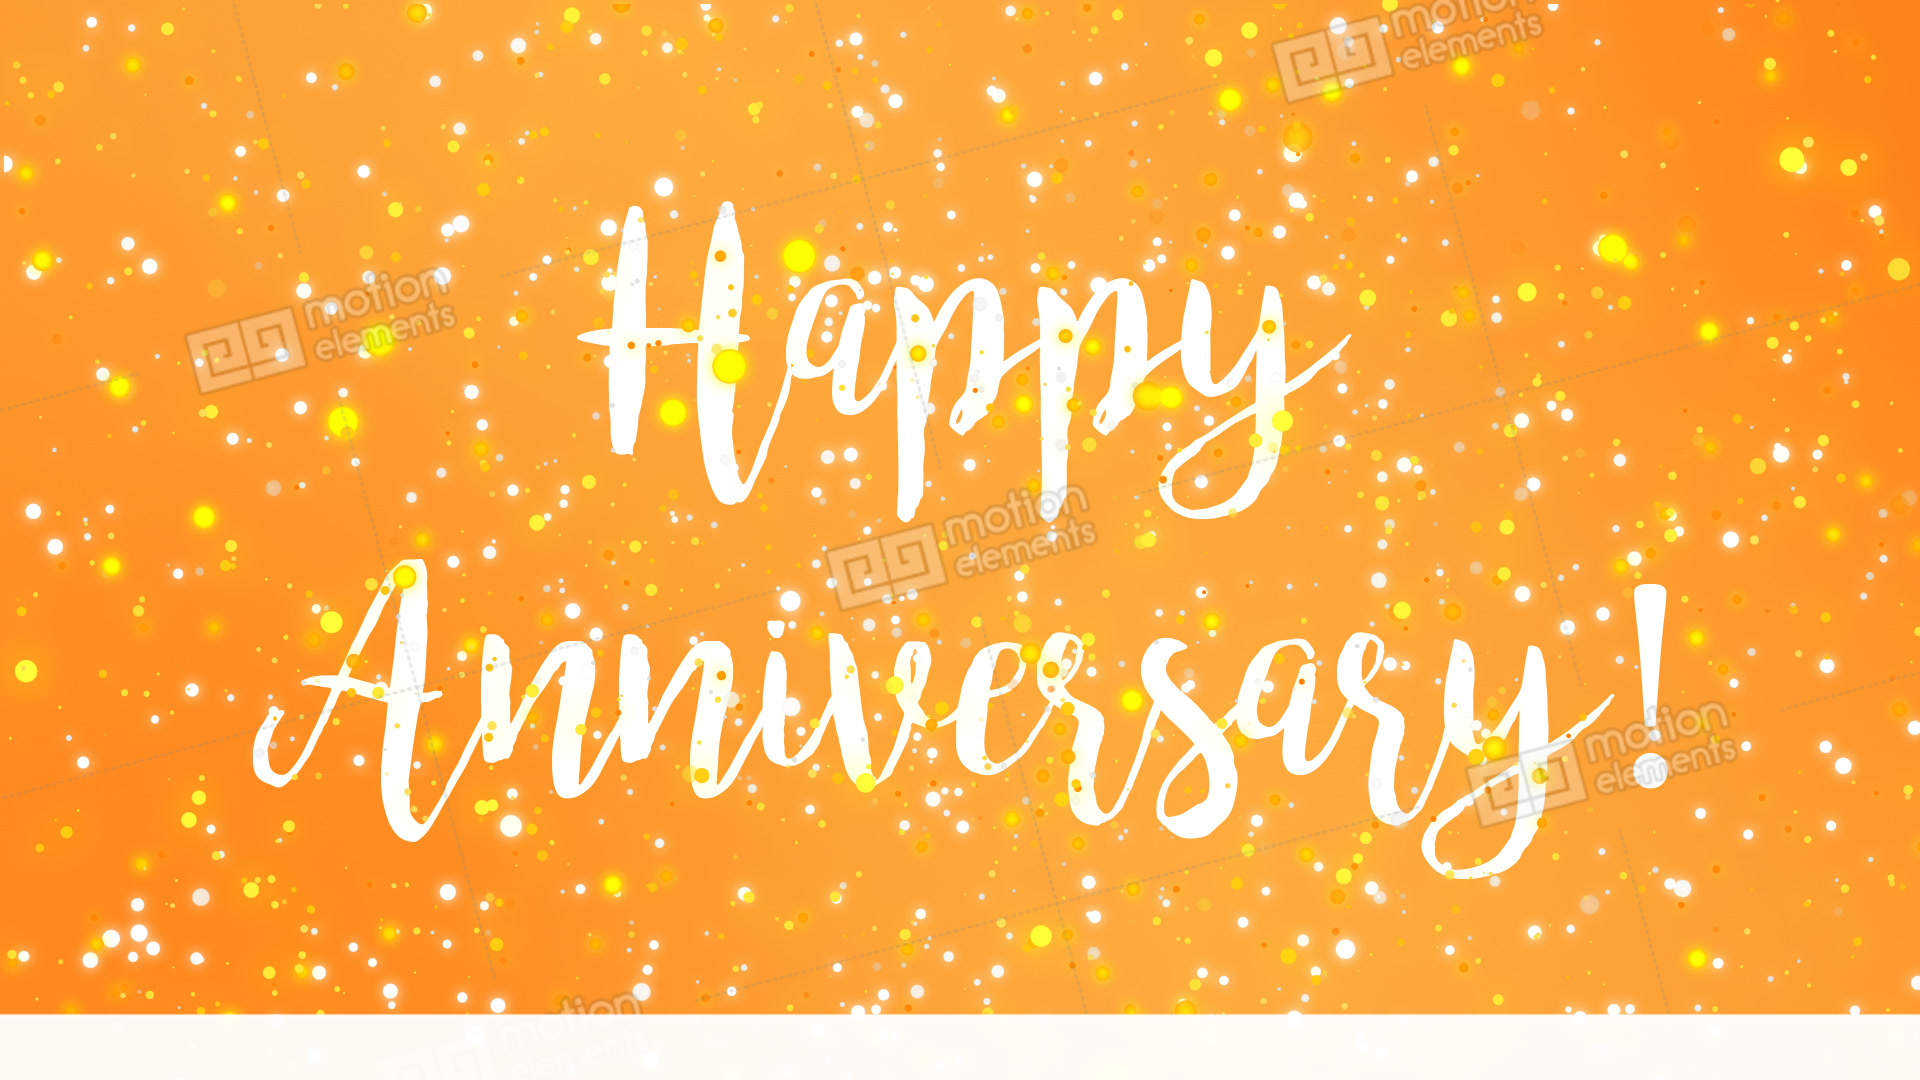 Sparkly Yellow Happy Anniversary Greeting Card Video Stock Animation